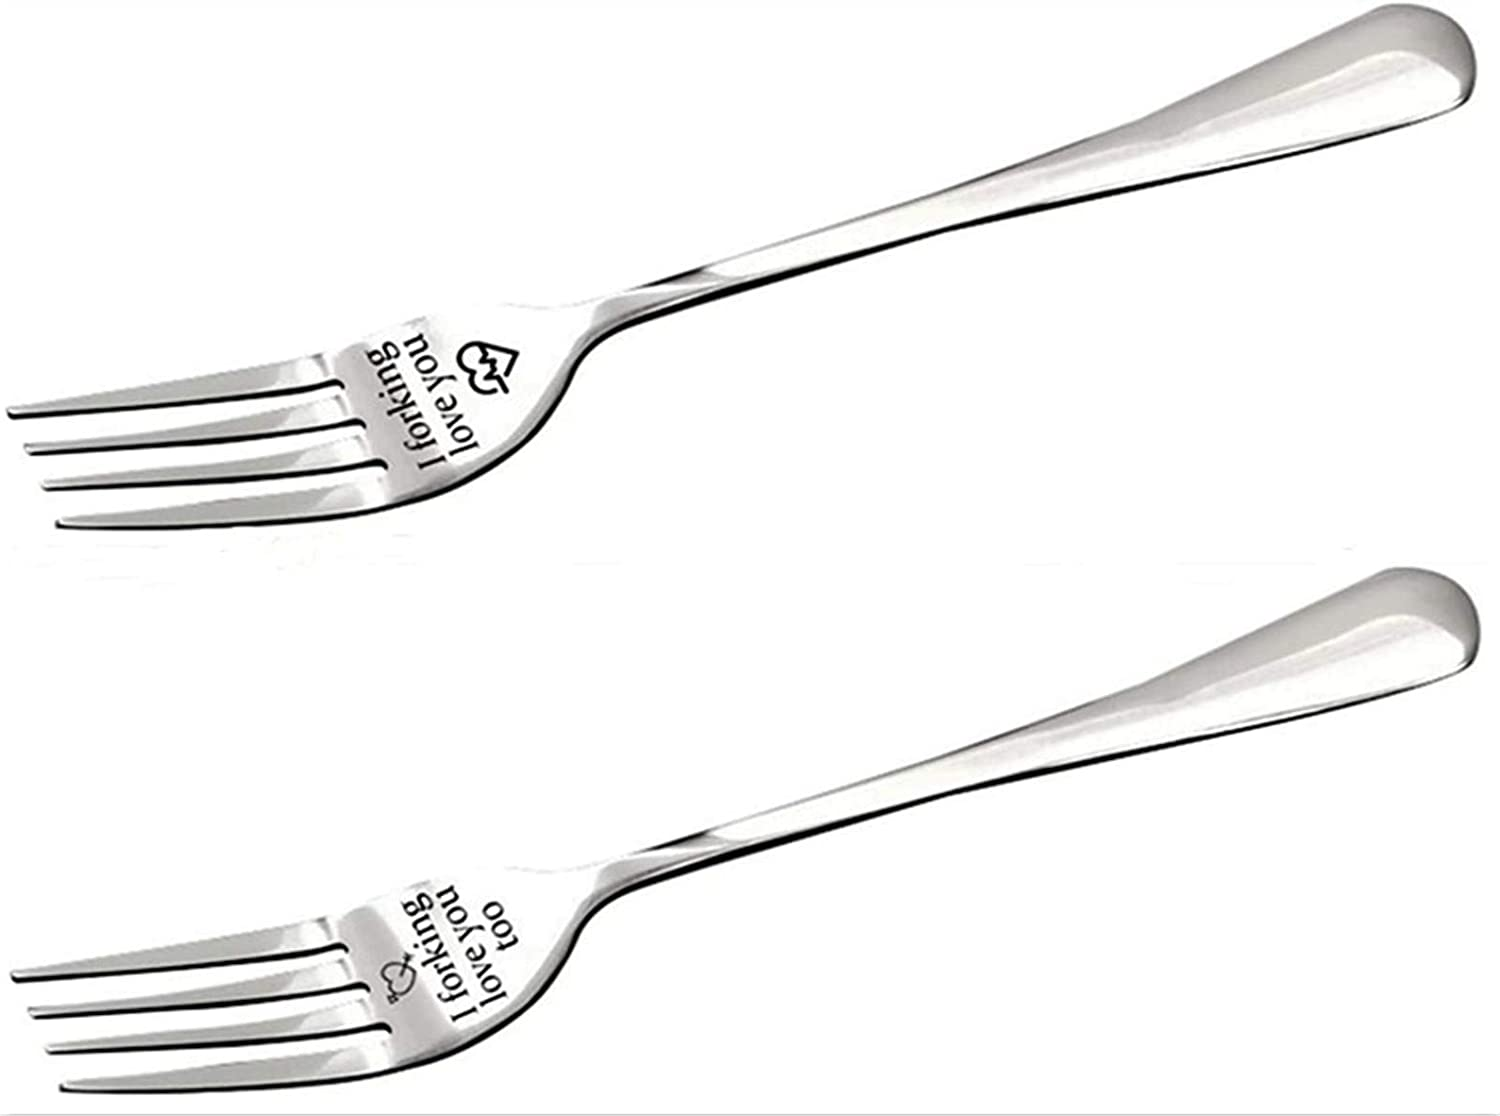 2 PCSI Forking Love You Fork Set Unique Gift for Husband Wife and Family Carving Fork Stainless Steel Personalized Engraved Fork Funny Couple Fork